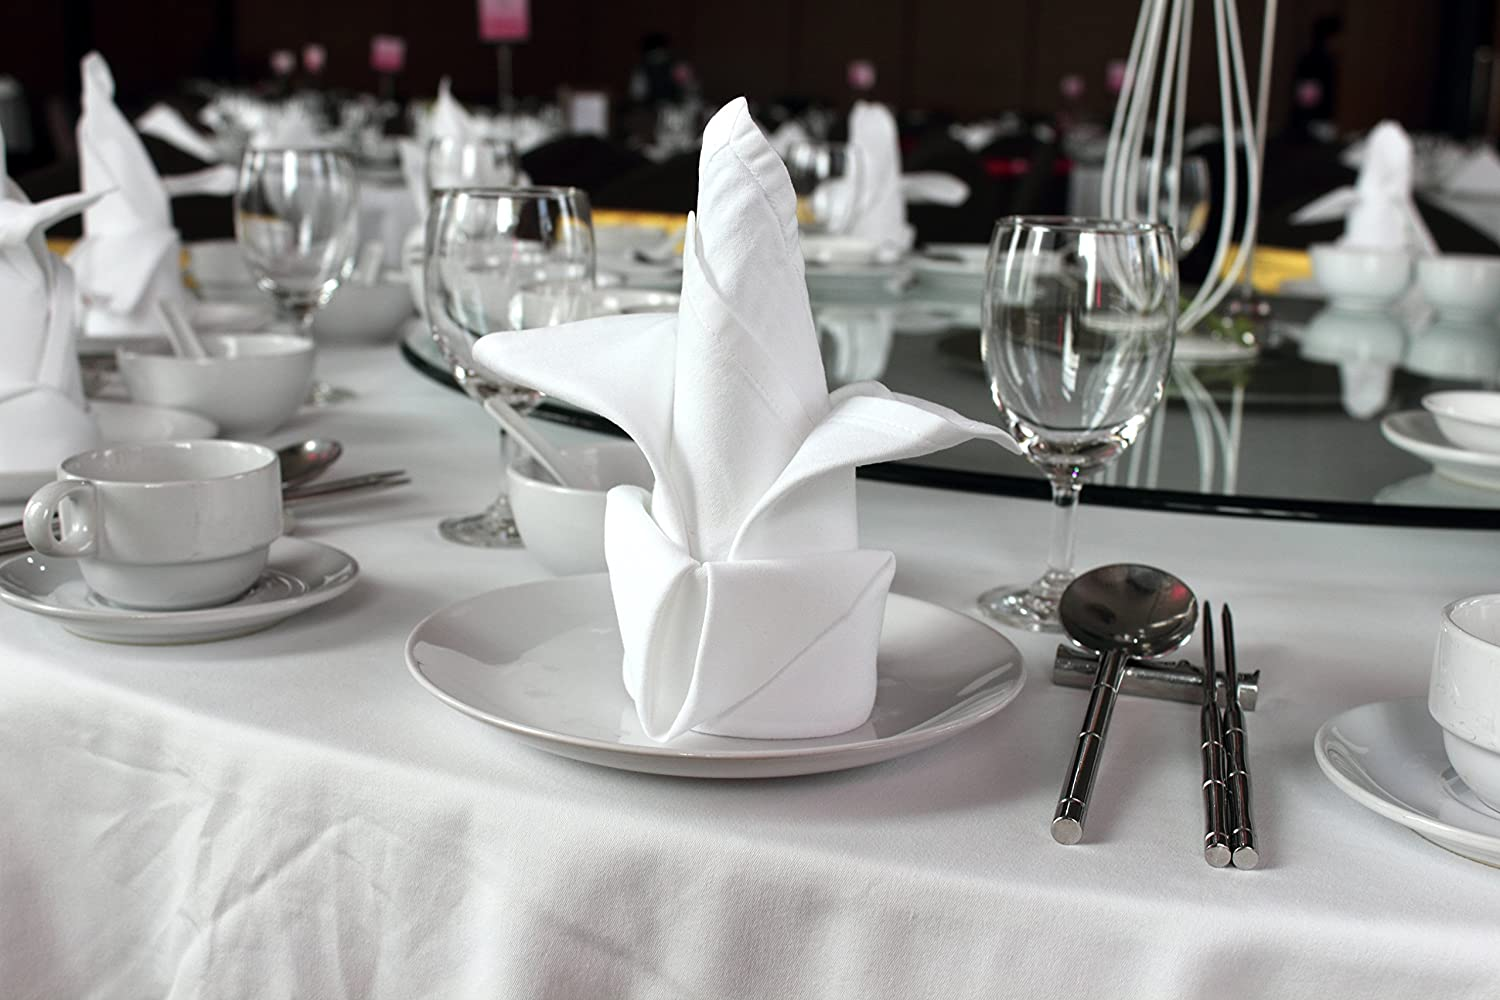 Atlas 6 Pieces White Dinner Napkins for Banquets & Restaurants, Commercial Grade 100% Polyester with Soft Cotton Touch, 20